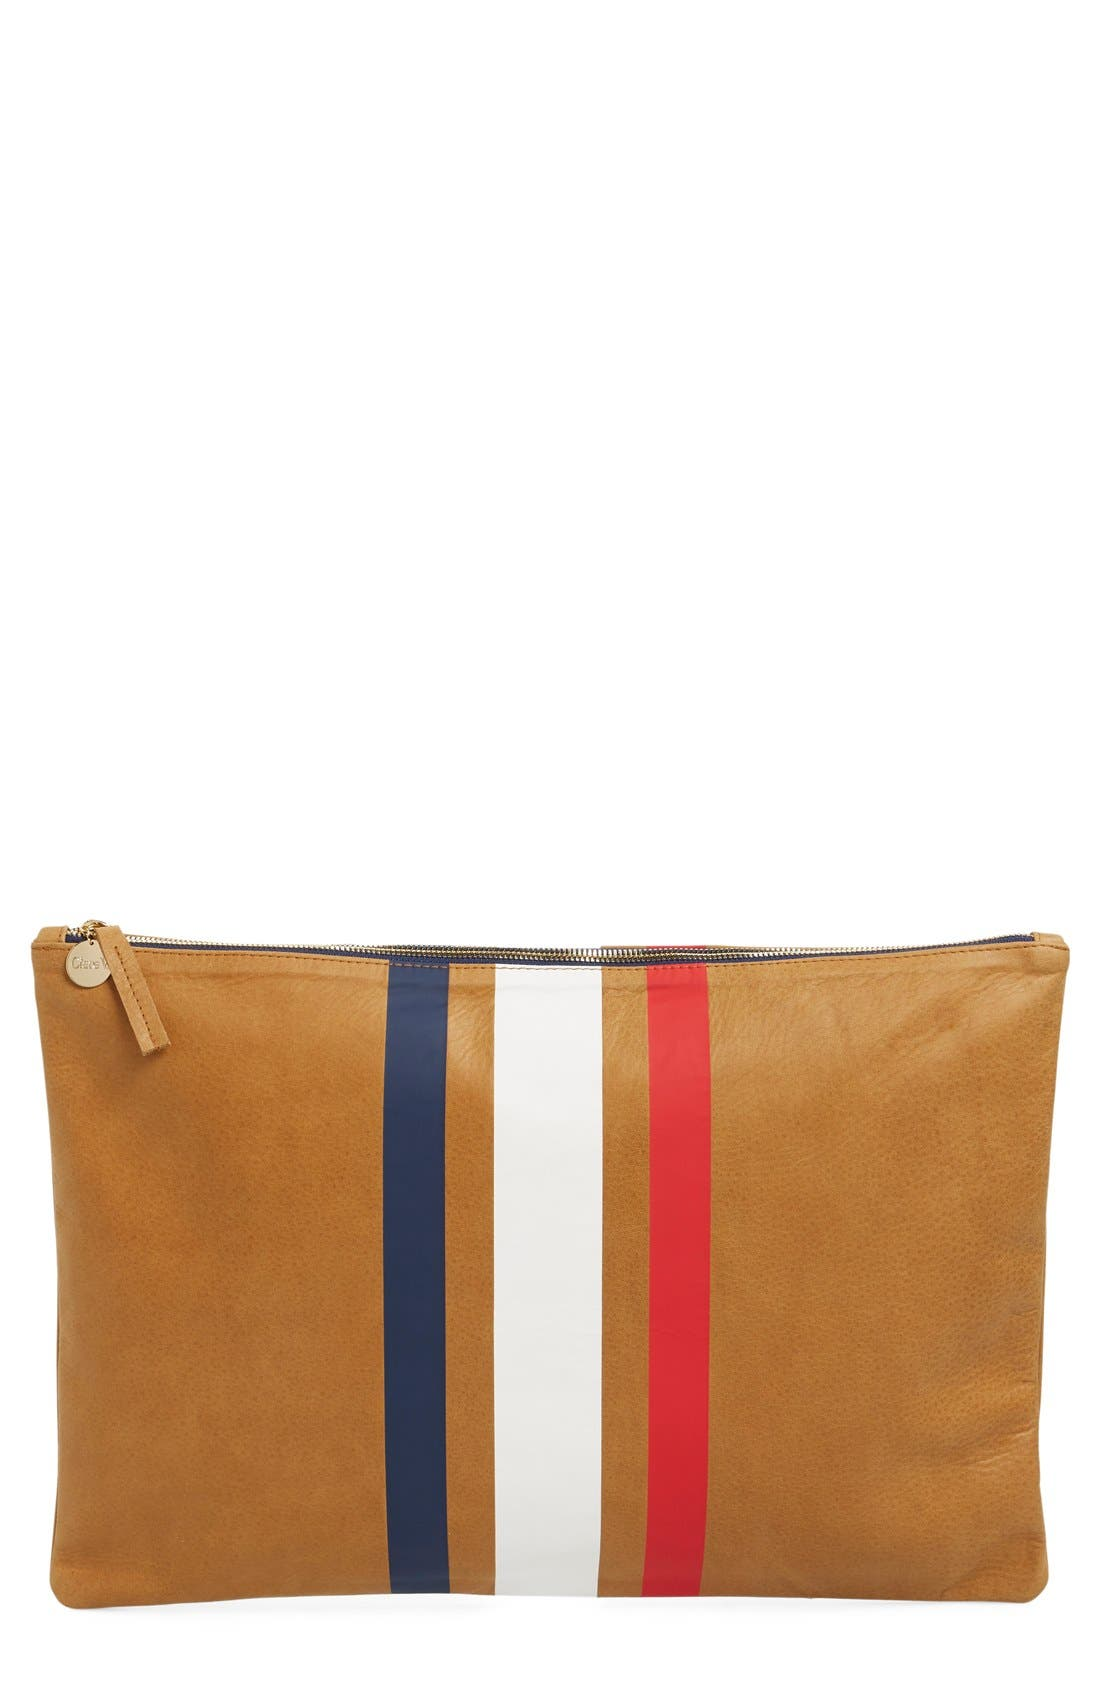 Alternate Image 1 Selected - Clare V. 'Oversize' Stripe Zip Leather Clutch